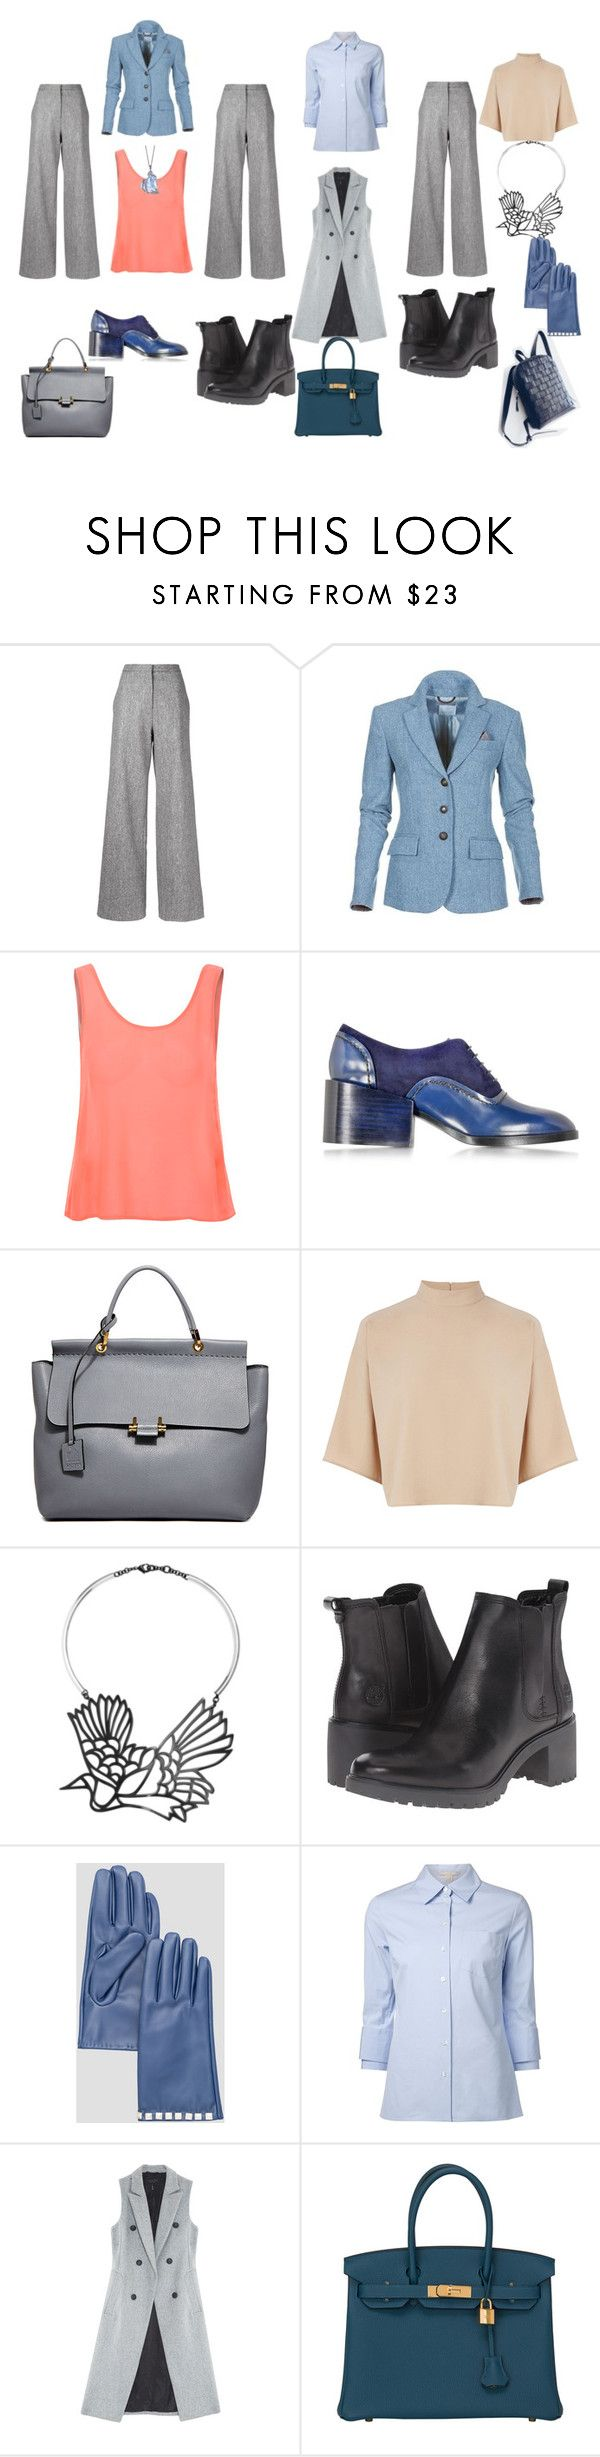 """серые брюки"" by viking-mo on Polyvore featuring мода, ADAM, Glamorous, Jil Sander, Lanvin, Warehouse, Carven, Timberland, Ashley Stewart и Michael Kors"